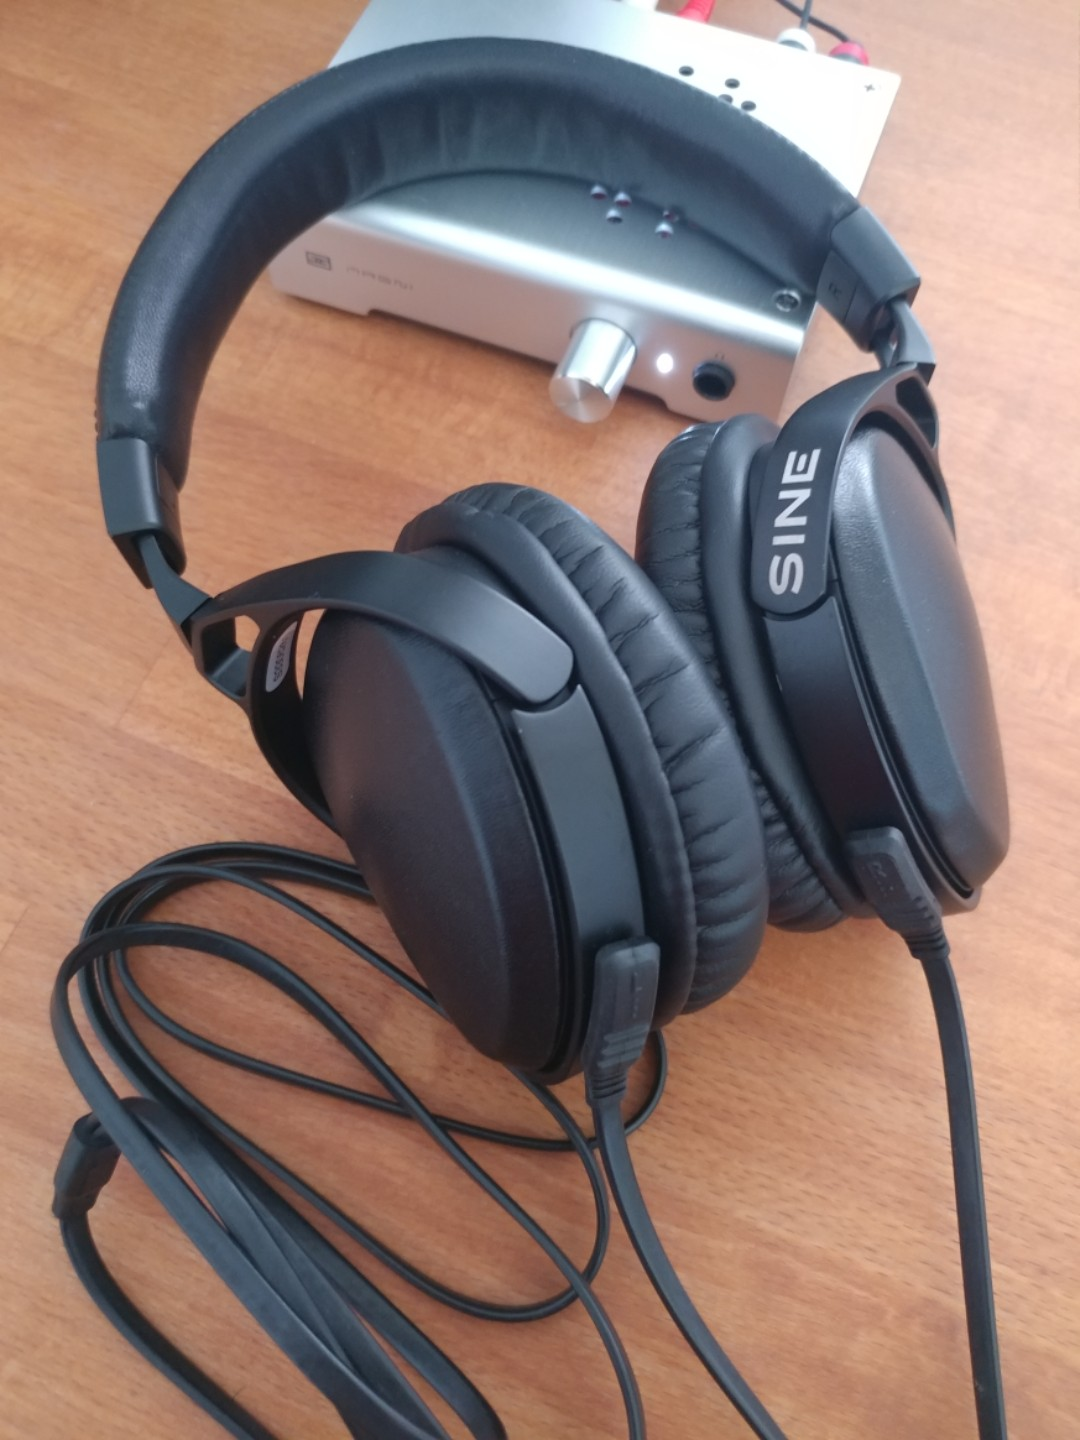 de1fc5b0901 Audeze Sine with 24bit cipher cable(with new over-ear earpads),  Electronics, Audio on Carousell